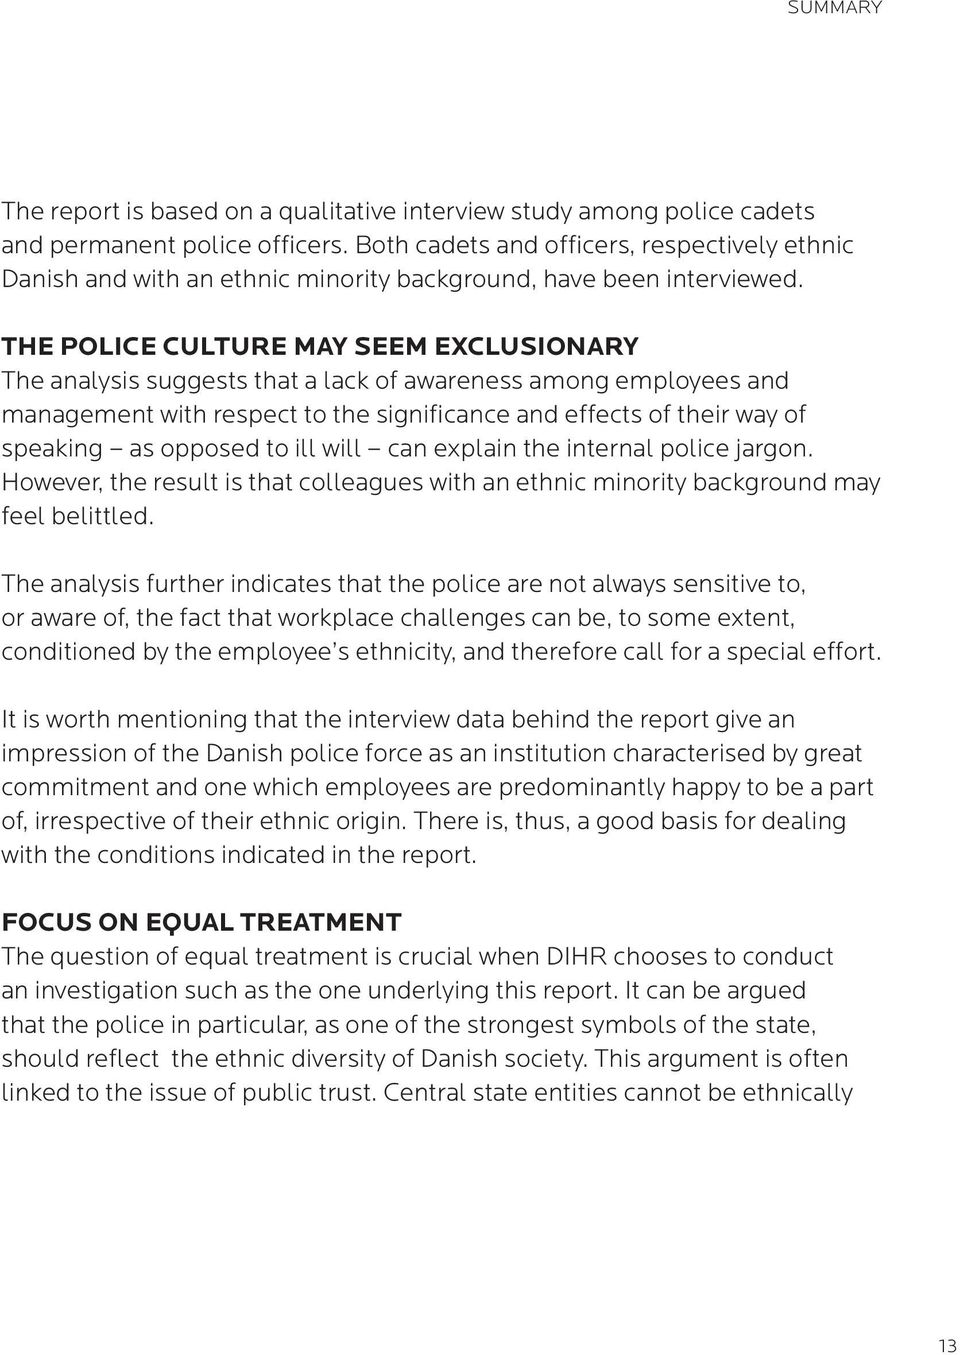 THE POLICE CULTURE MAY SEEM EXCLUSIONARY The analysis suggests that a lack of awareness among employees and management with respect to the significance and effects of their way of speaking as opposed